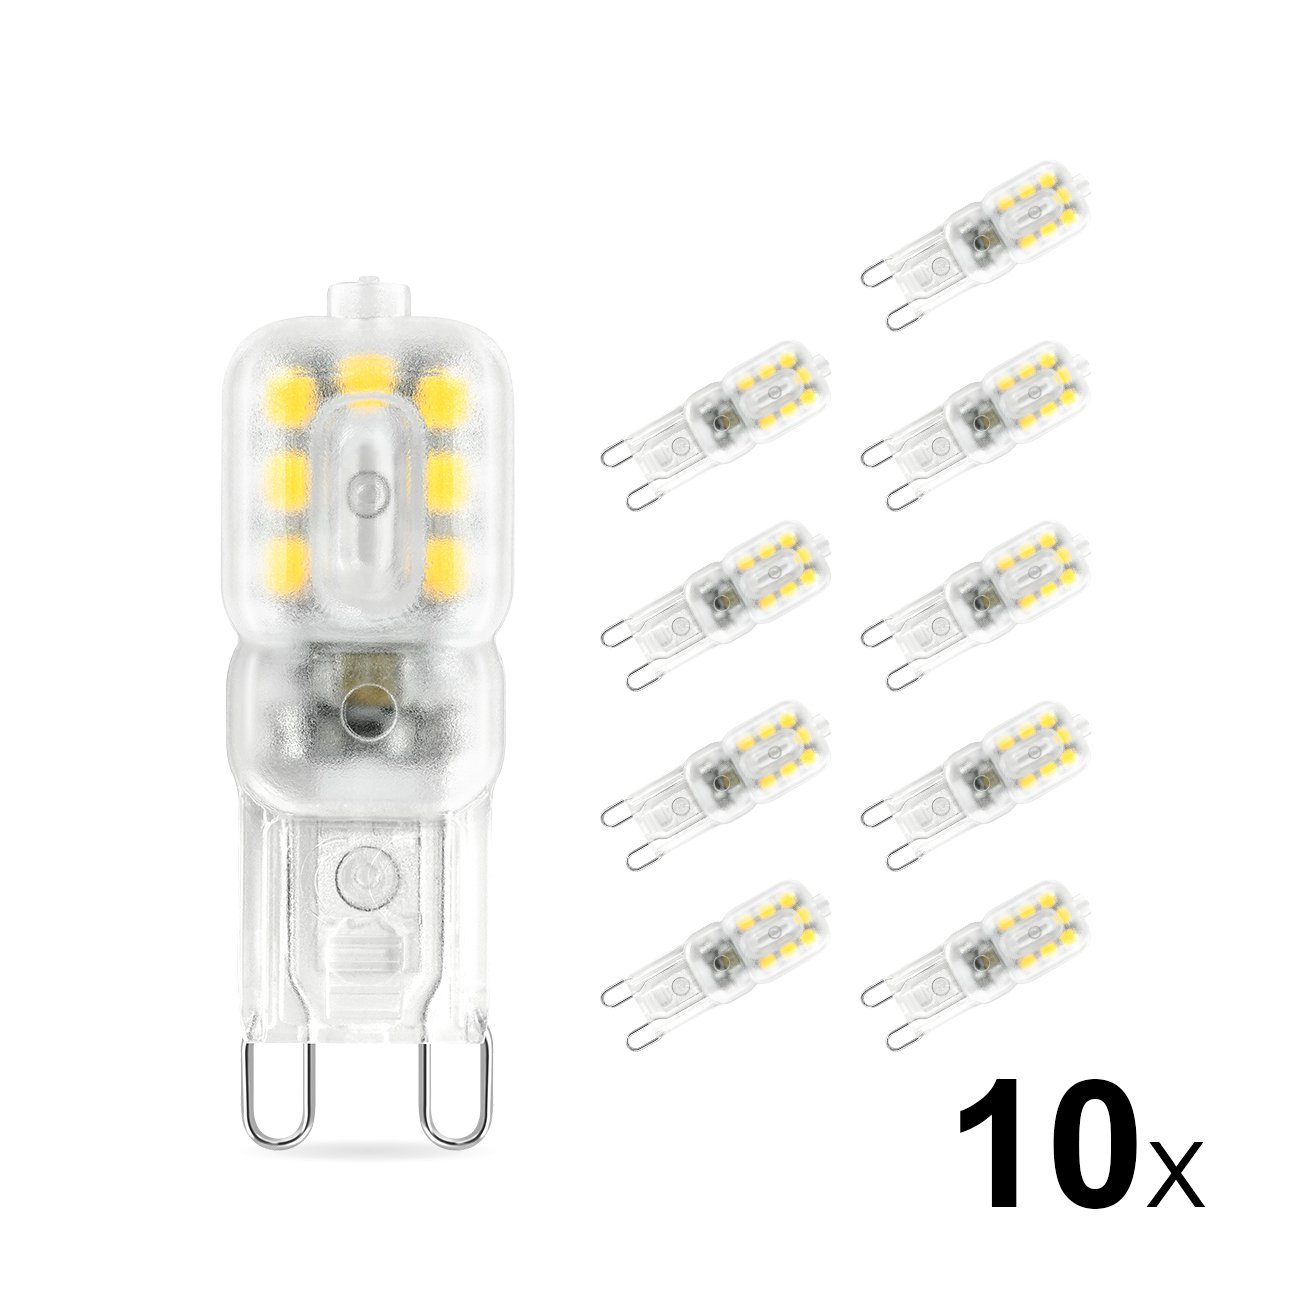 LVWIT Bombillas LED G9-3W equivalente a 10W, 220 lúmenes, Color blanco neutro 4000K, Sin efecto flash. No regulable - Pack de 10 Unidades.